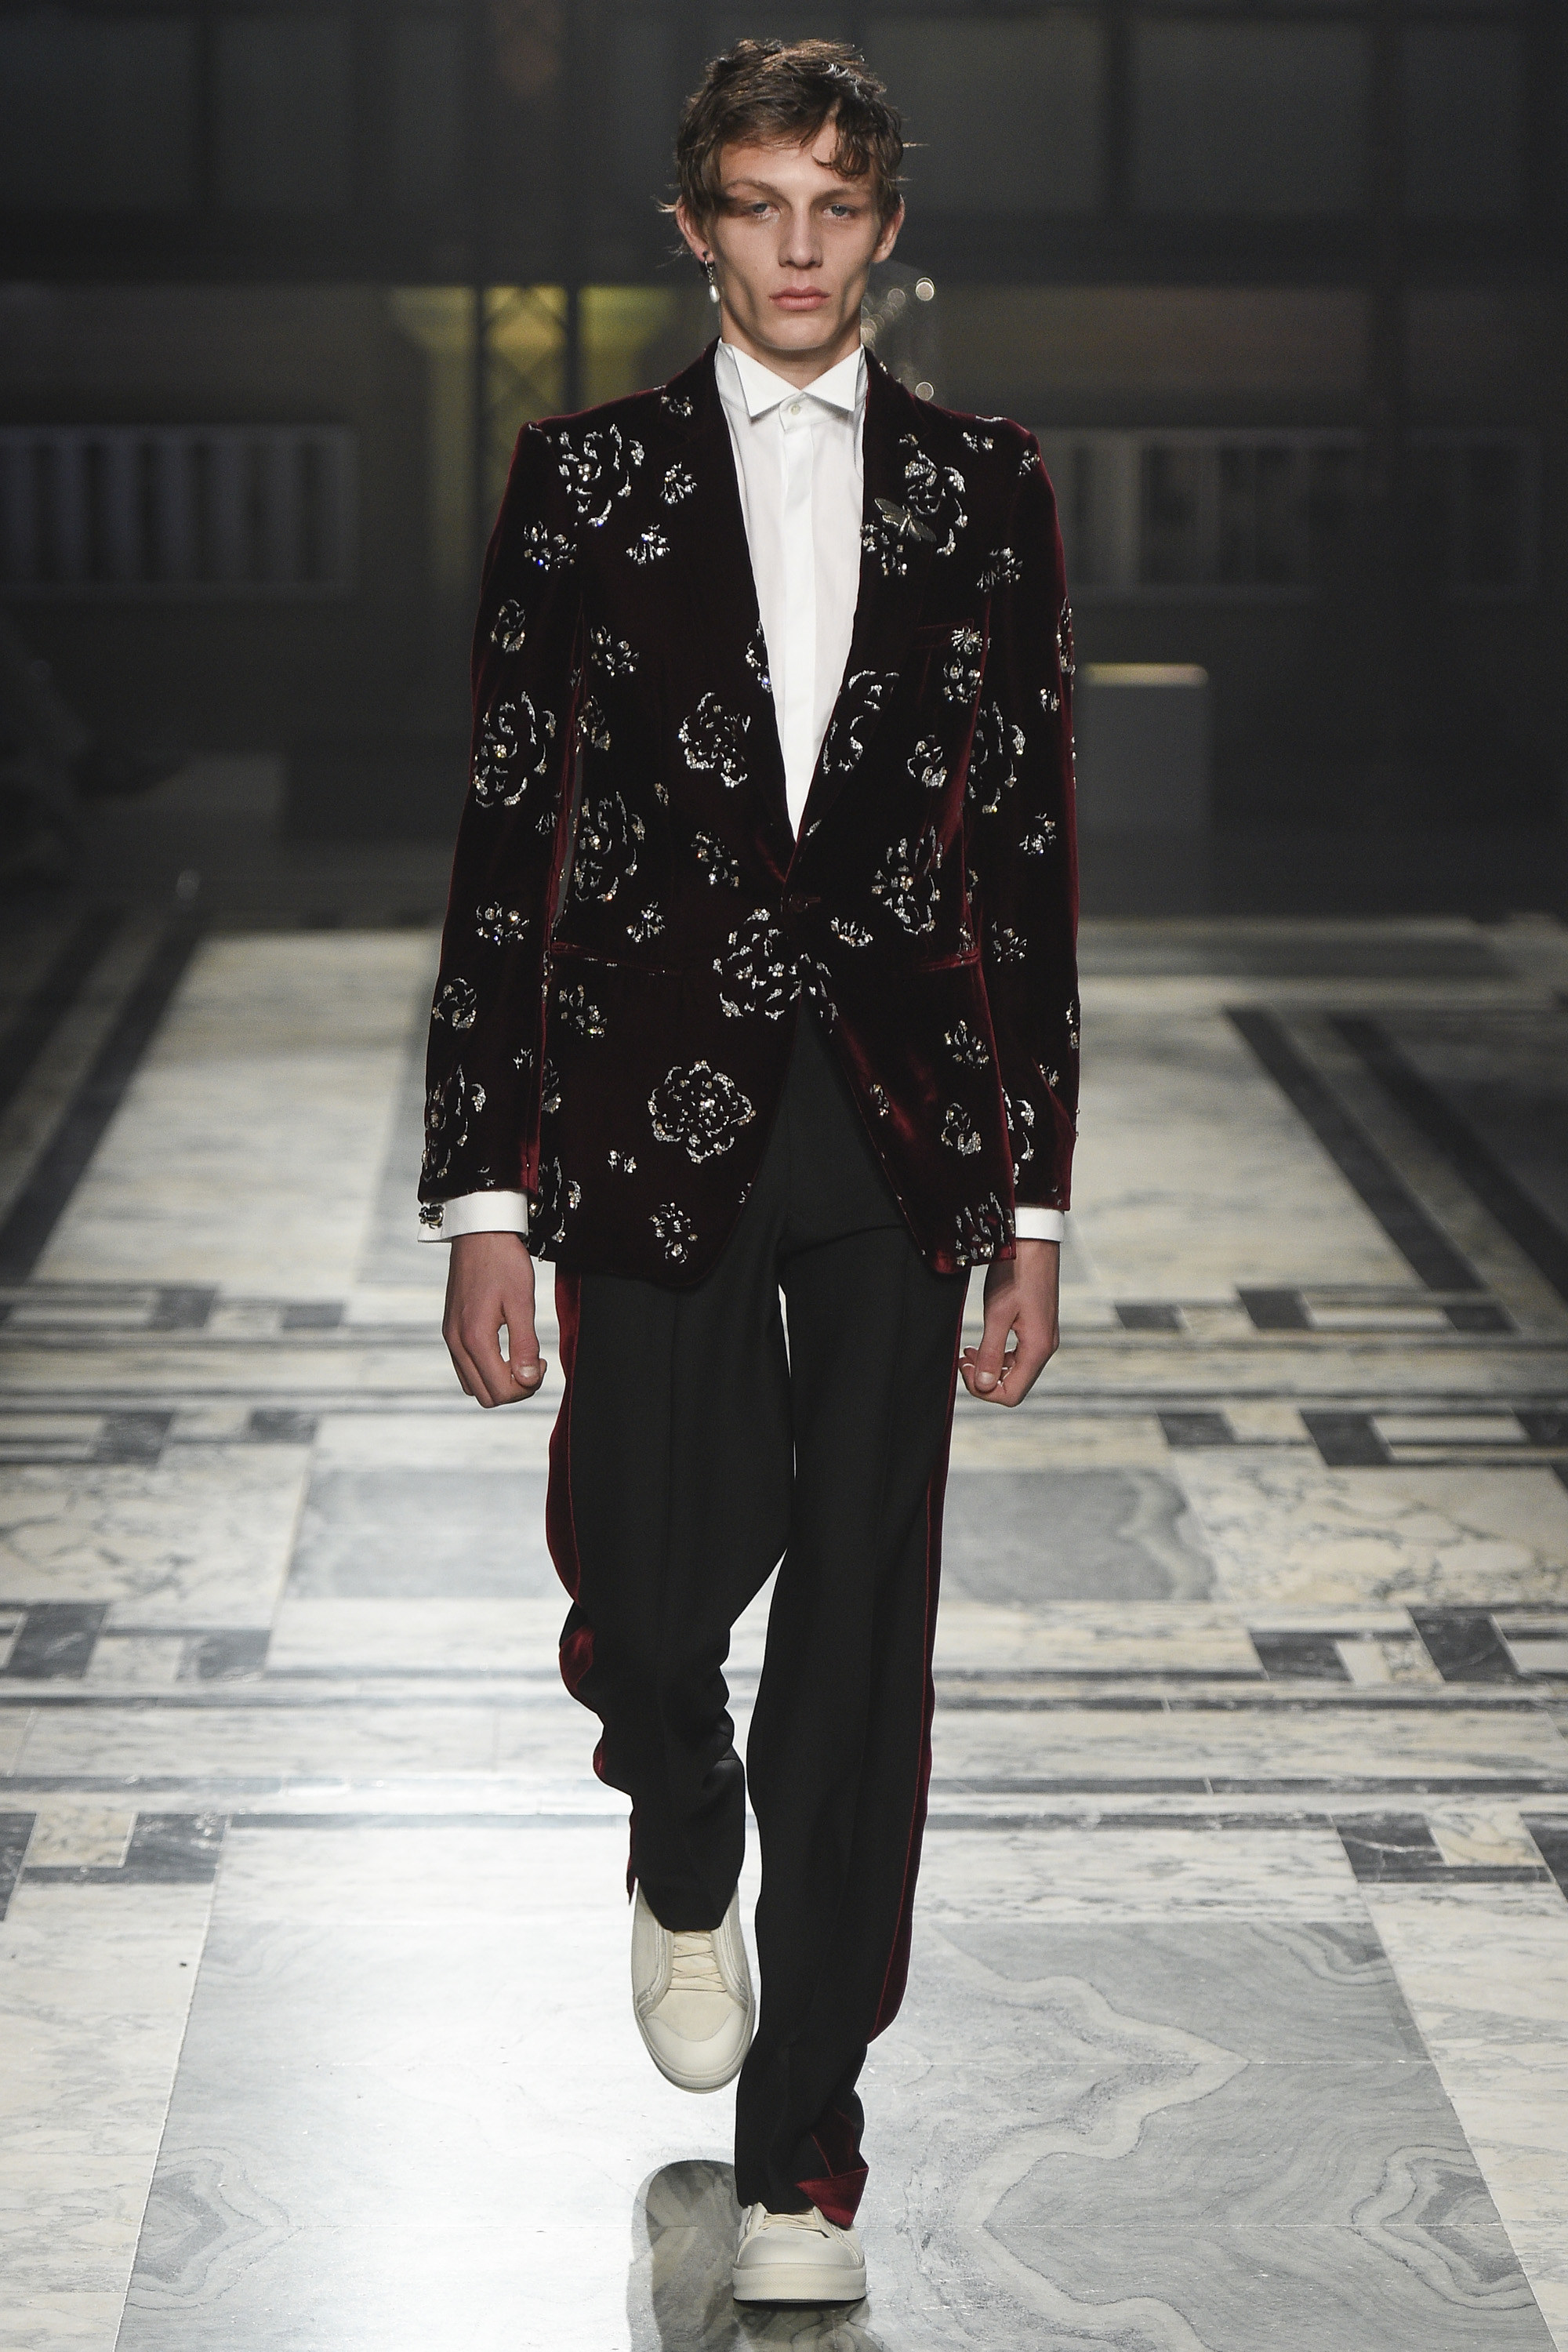 alexander mcqueen, fashion show, london collection, fashion blogger, blog de moda, alex cursino, moda sem censure, review, digital influencer,  (11)